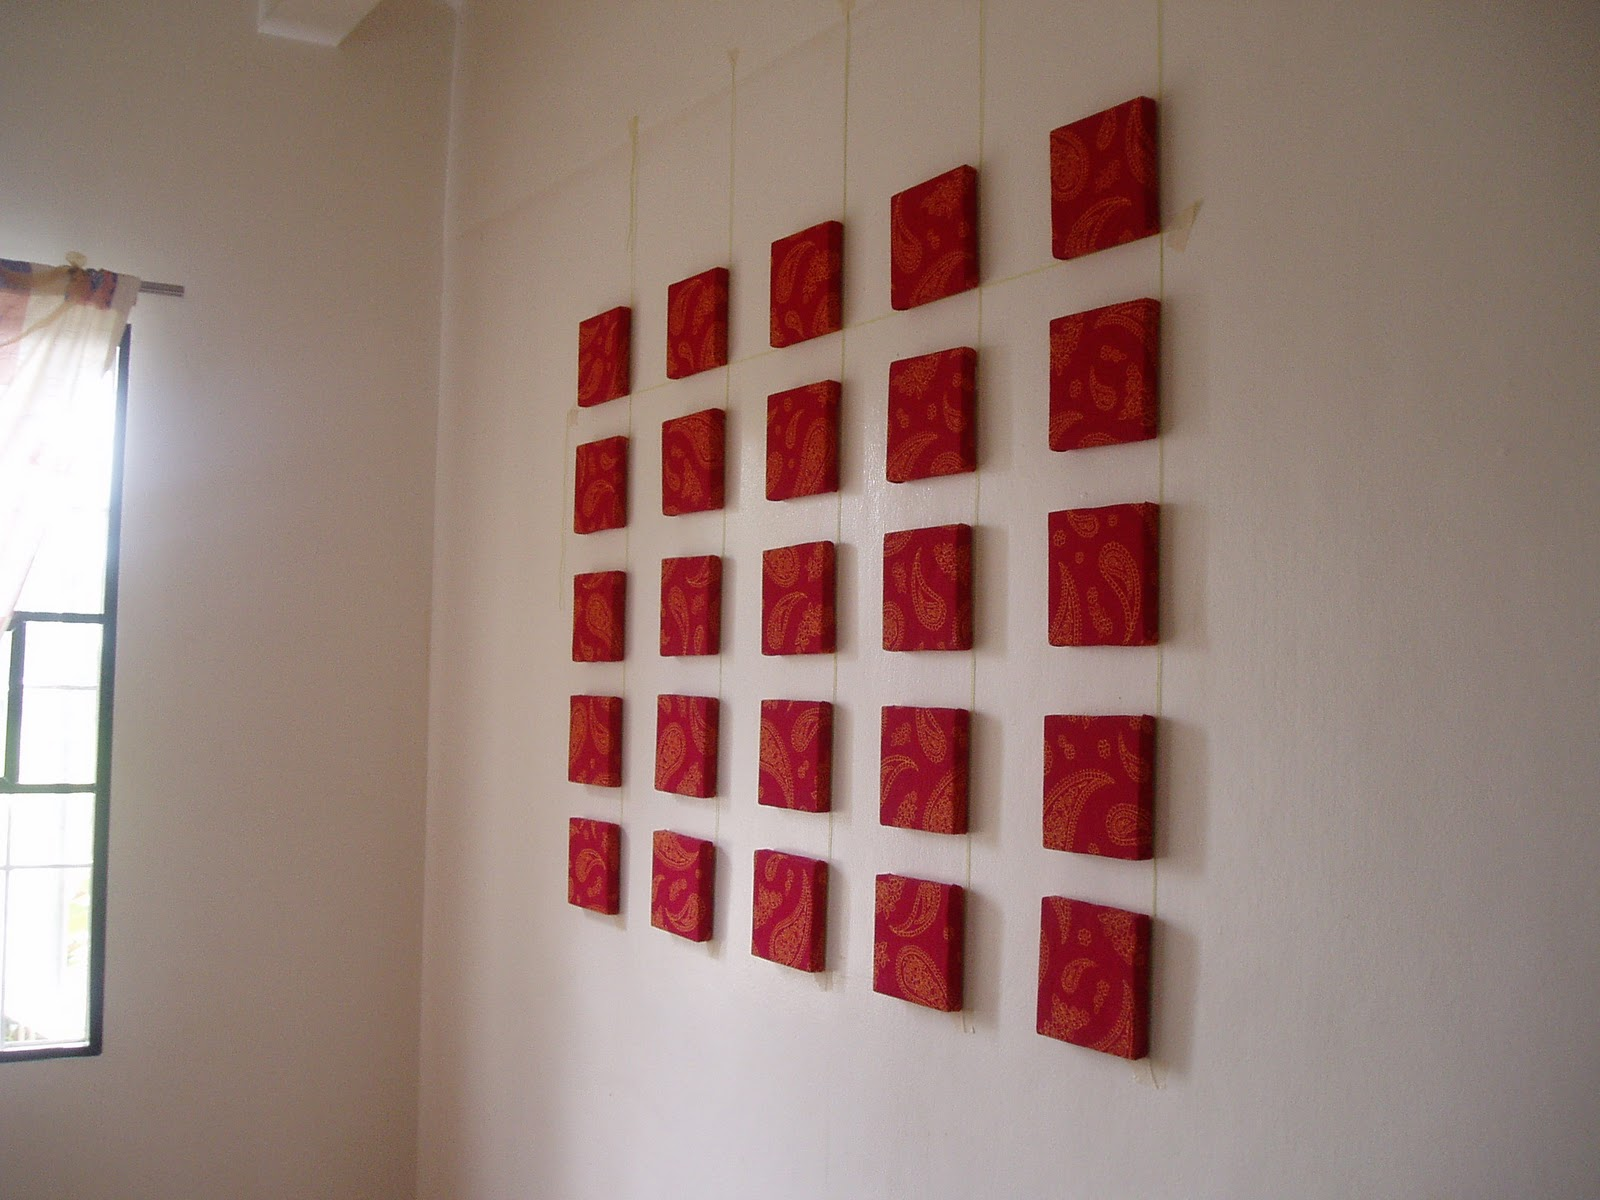 Sanguine fiasco red wall decor - Images of wall decoration ...